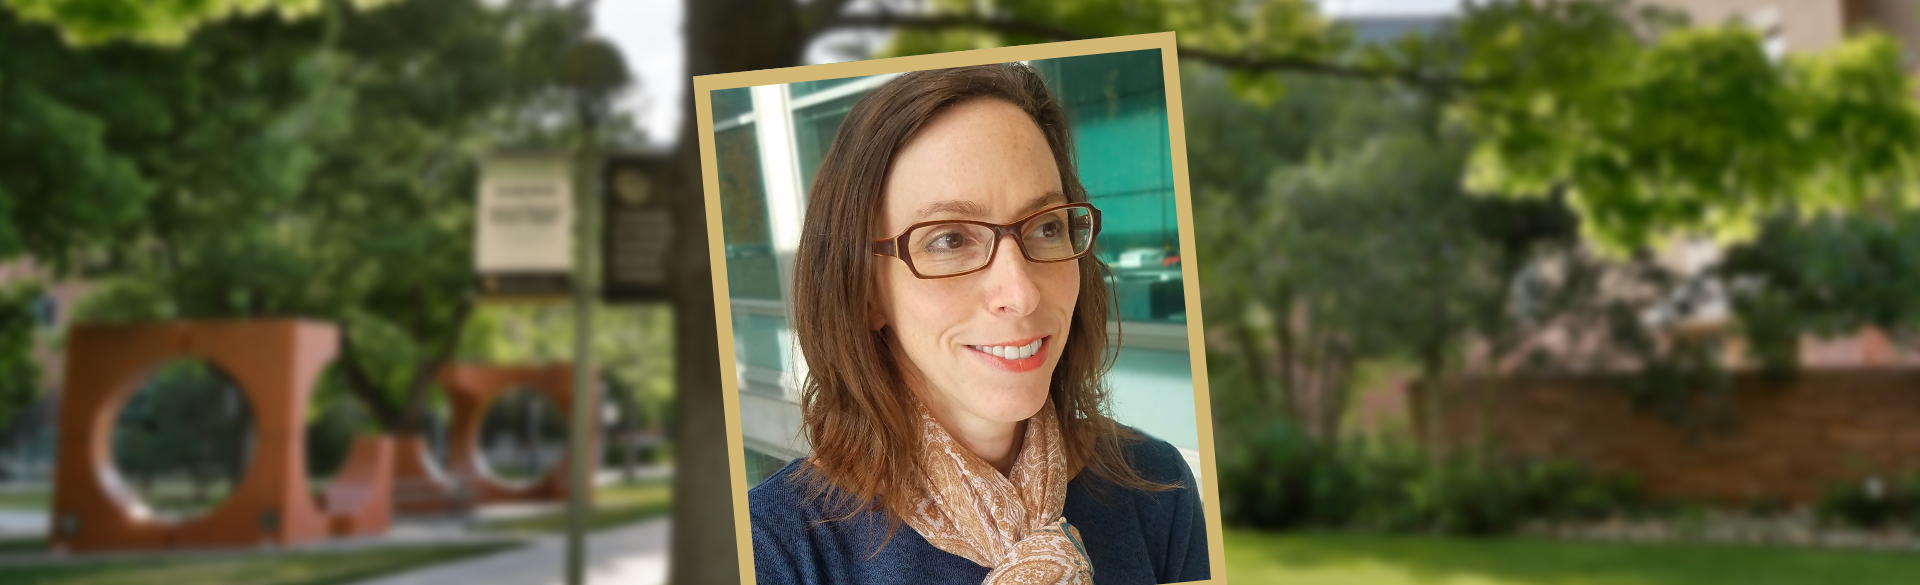 Melissa A. Haendel, PhD, has been named Chief Research Informatics Officer (CRIO).